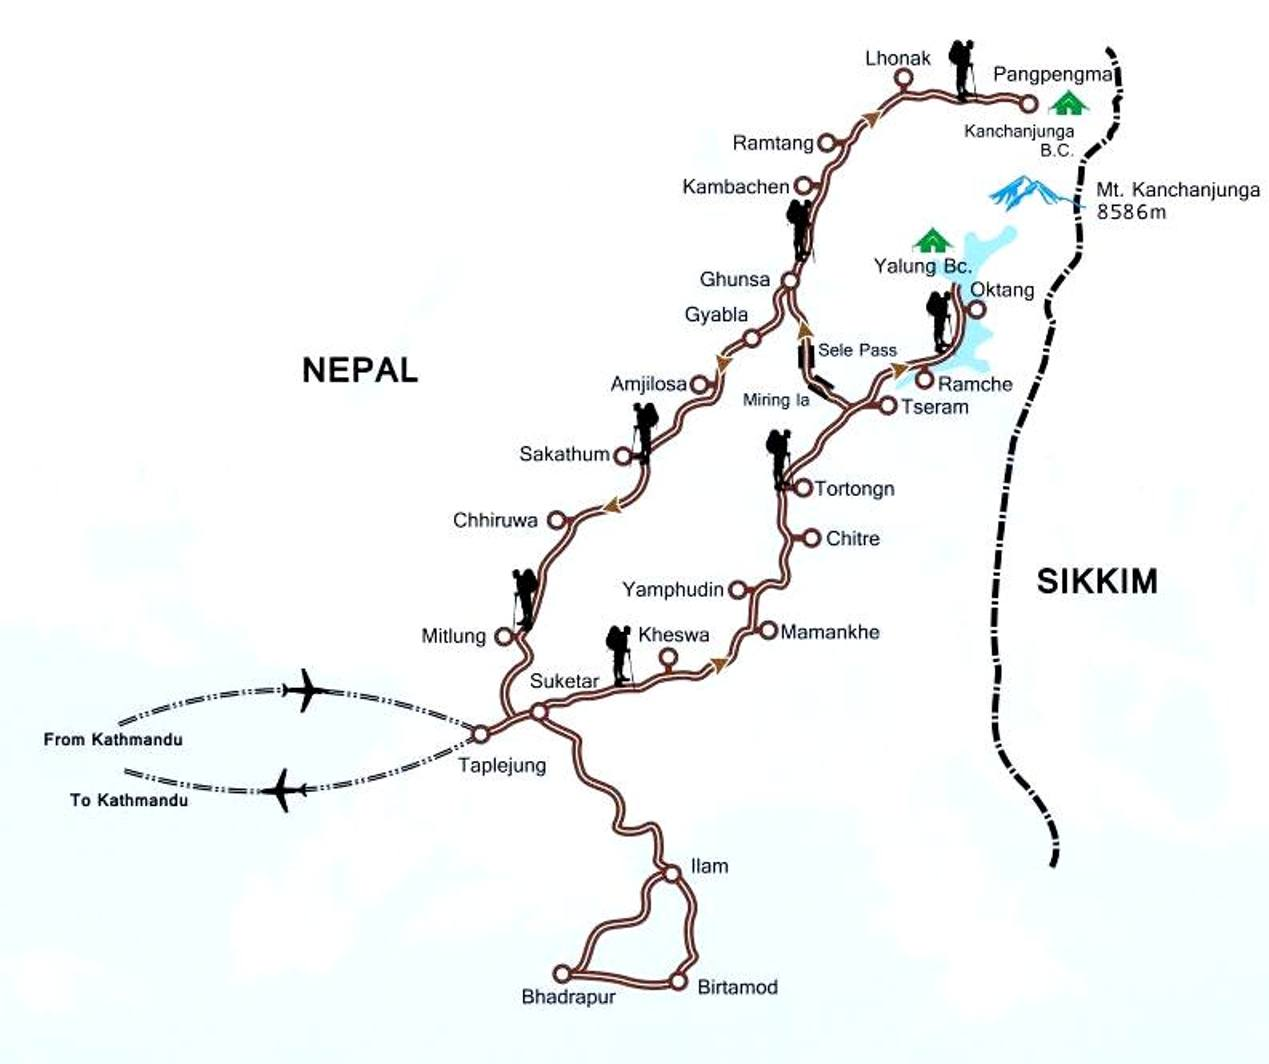 Kanchenjunga North Base Camp Trek Map